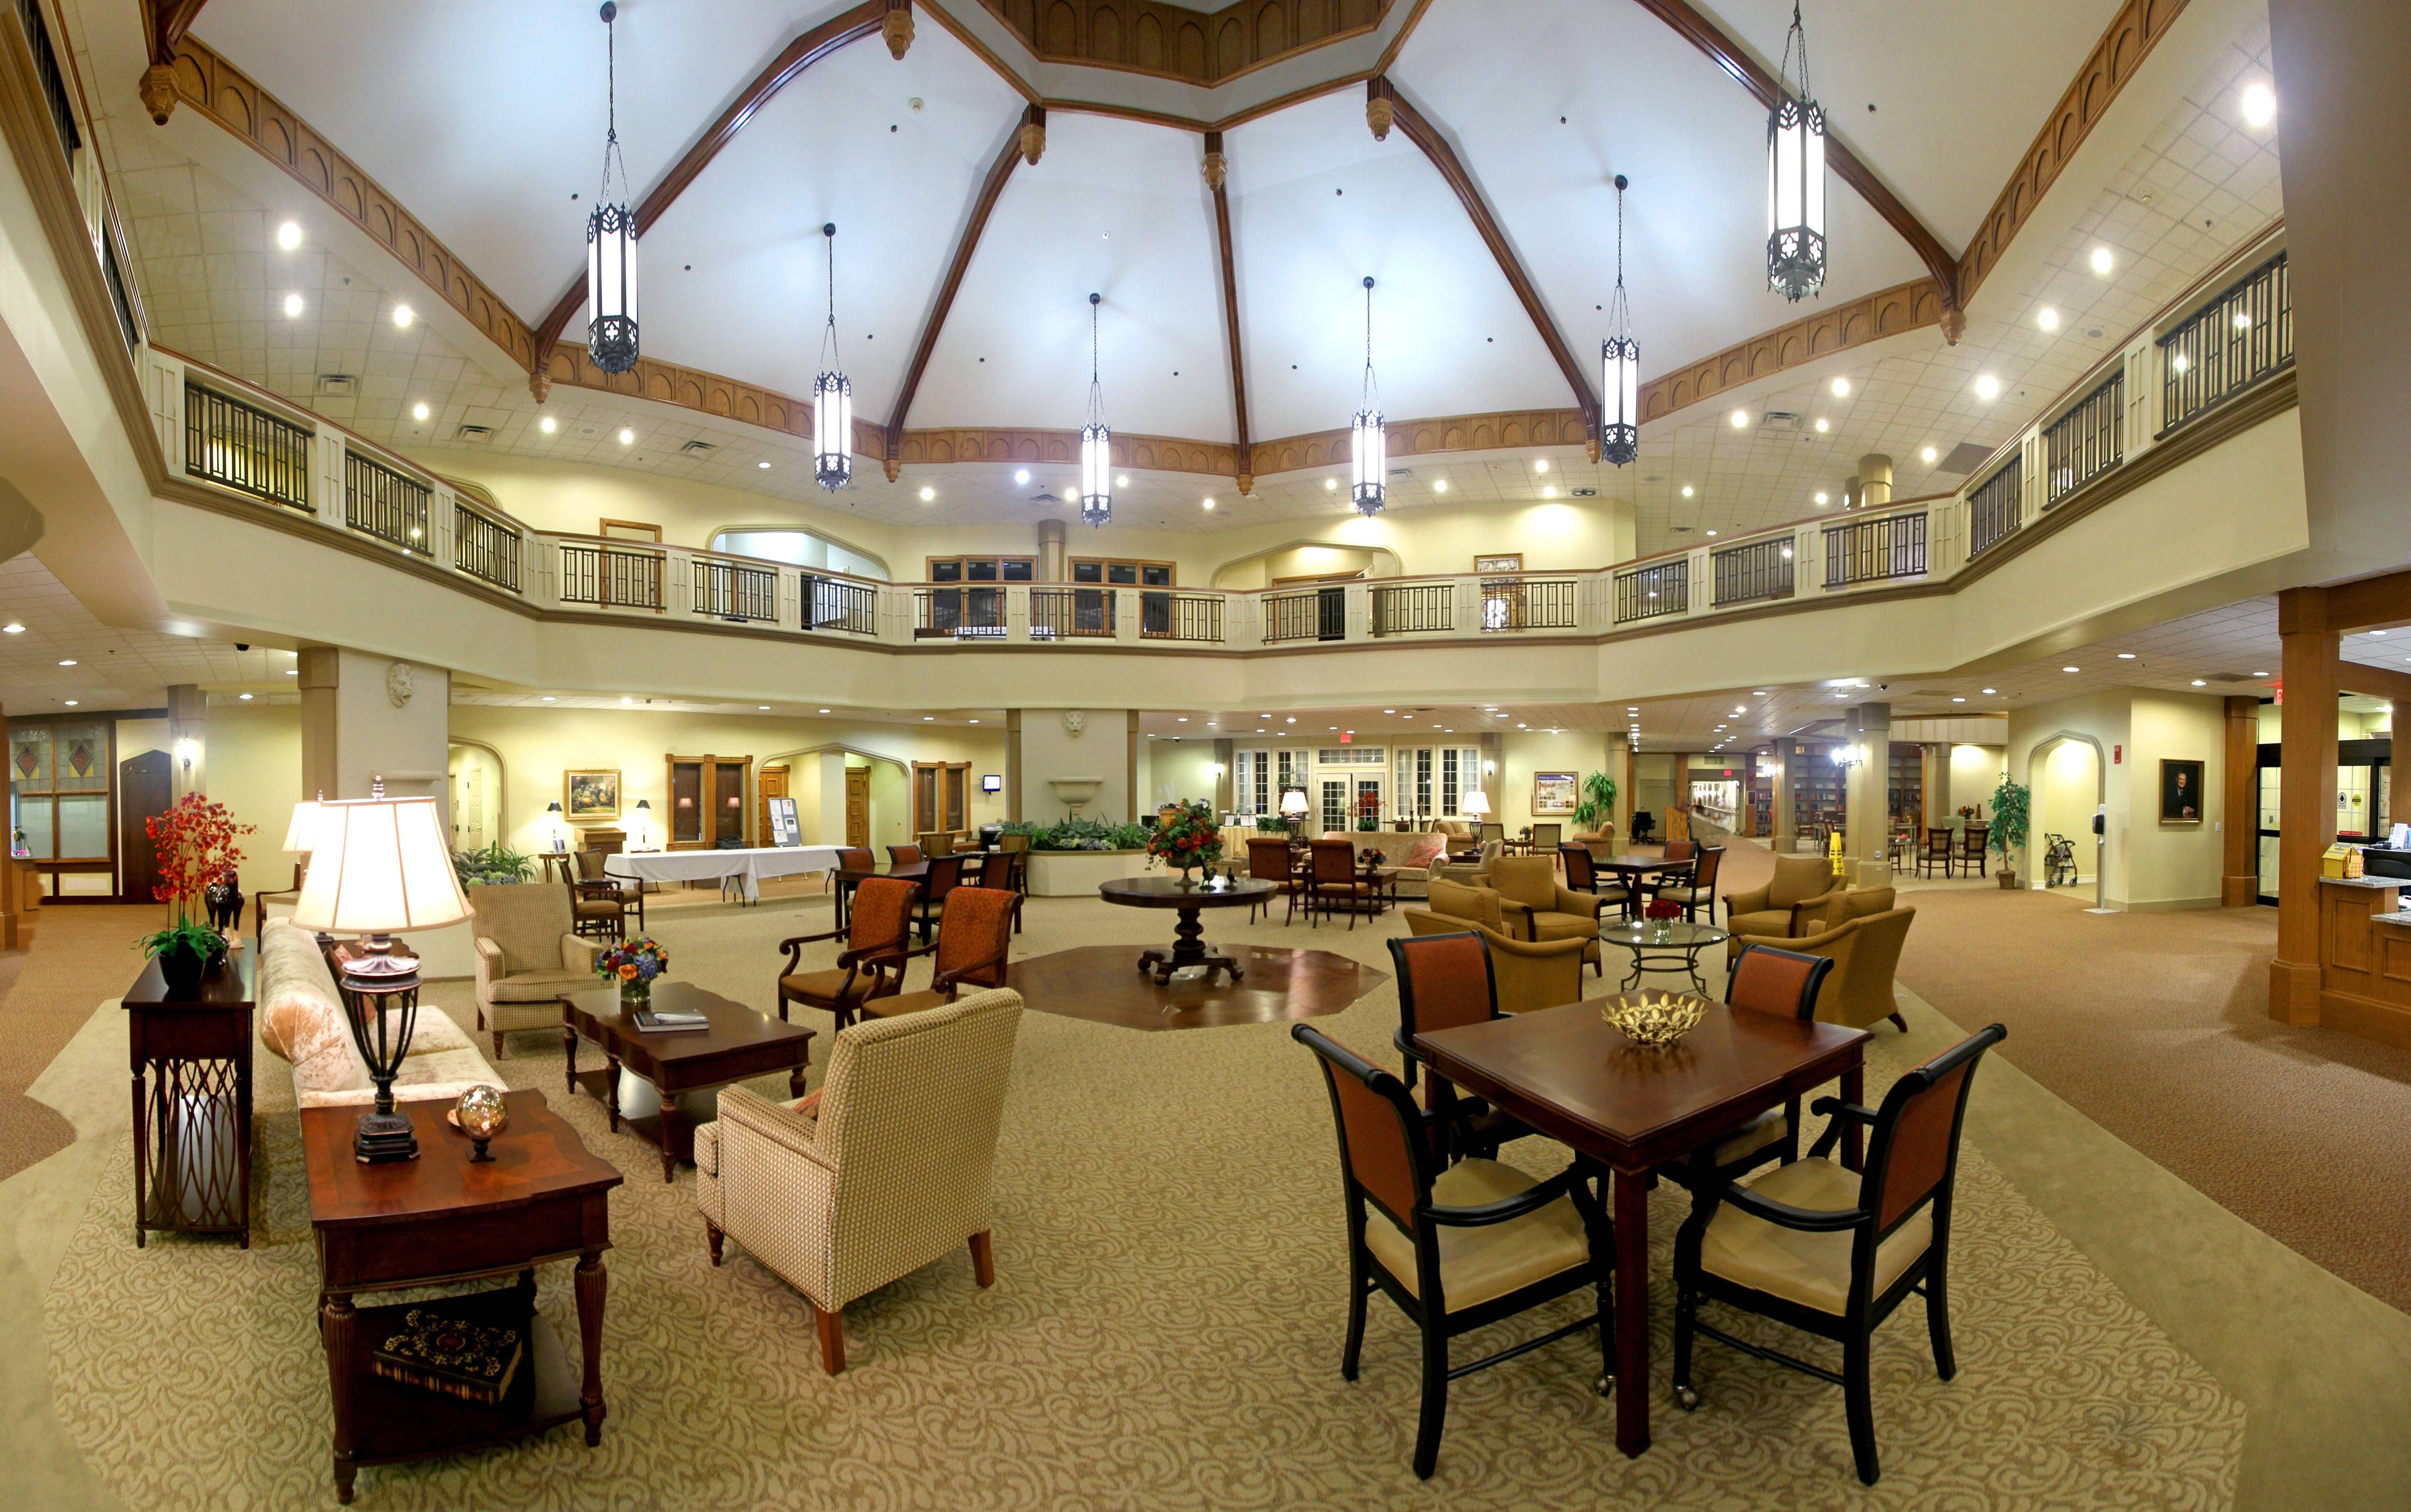 The remodeled Centrum of Windsor Park, A Covenant Retirement Community located in Carol Stream, Illinois.